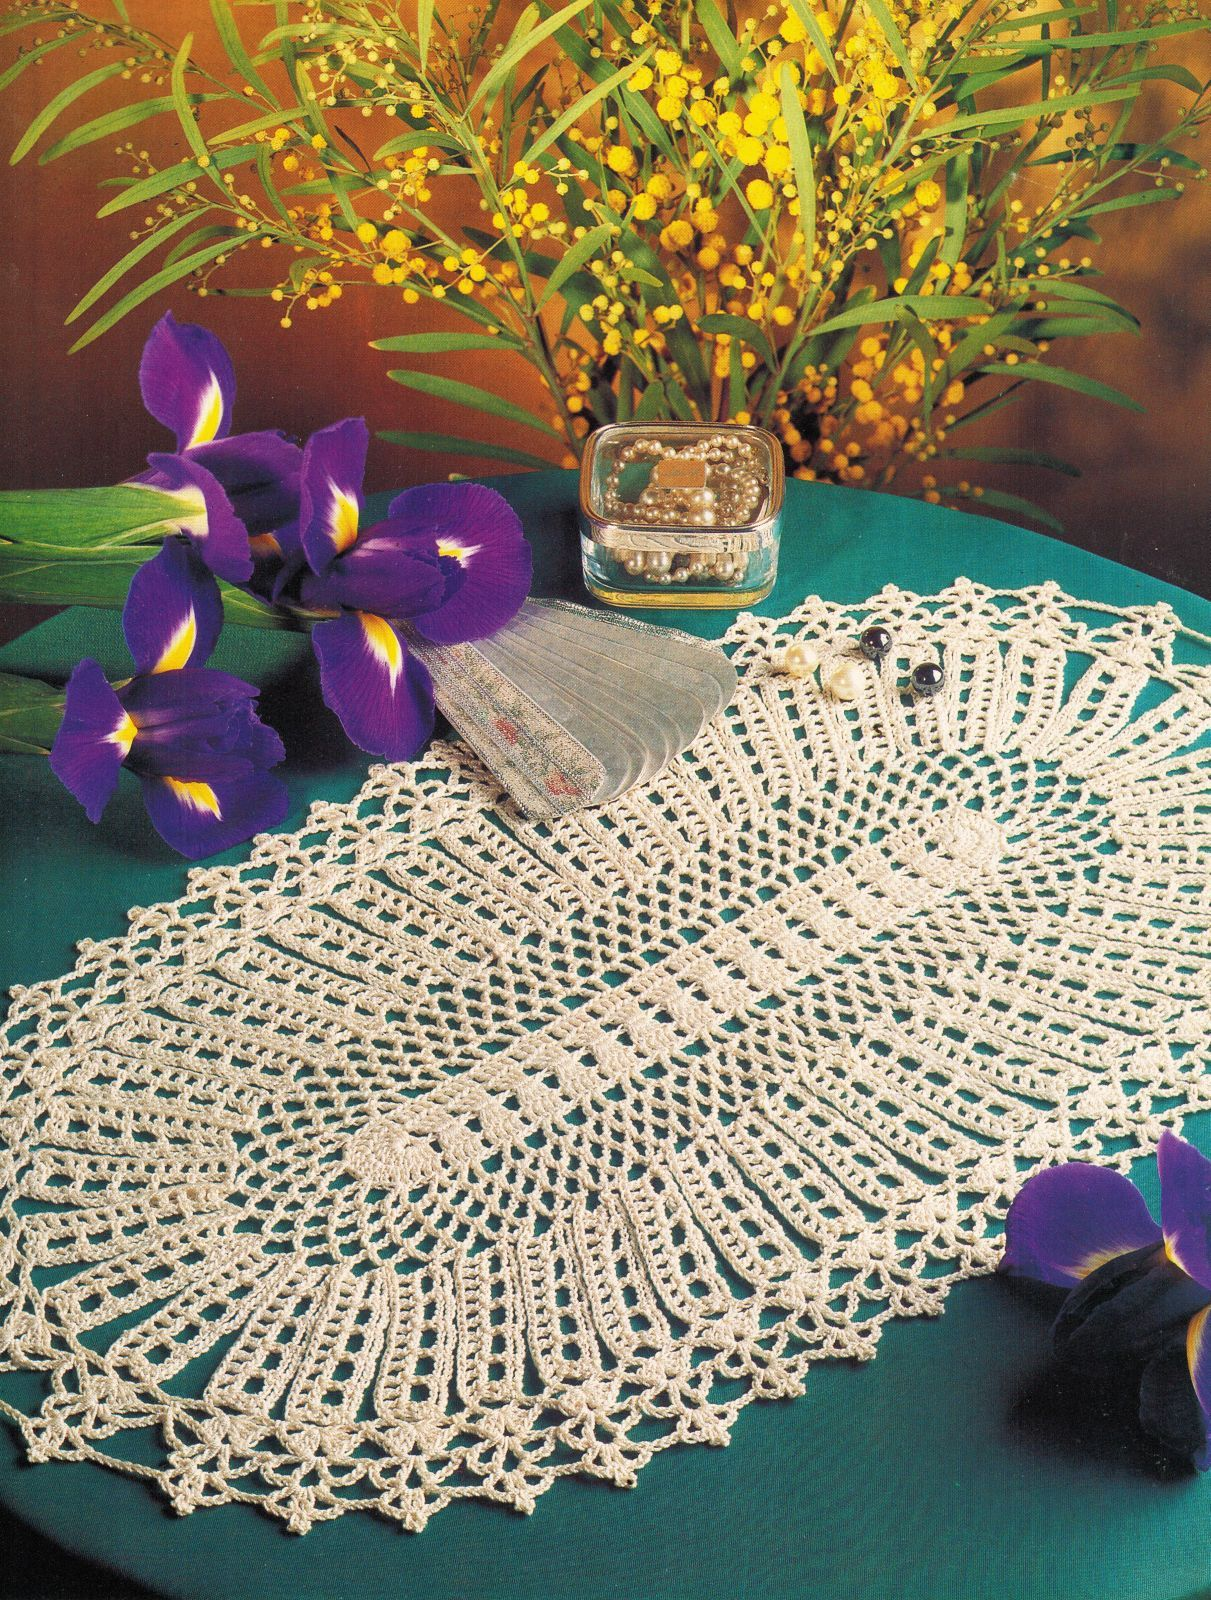 Primary image for 7X Ovalissimo Iris Oval Table Topper Mat Scrolls Palms Fan Doily Crochet Pattern